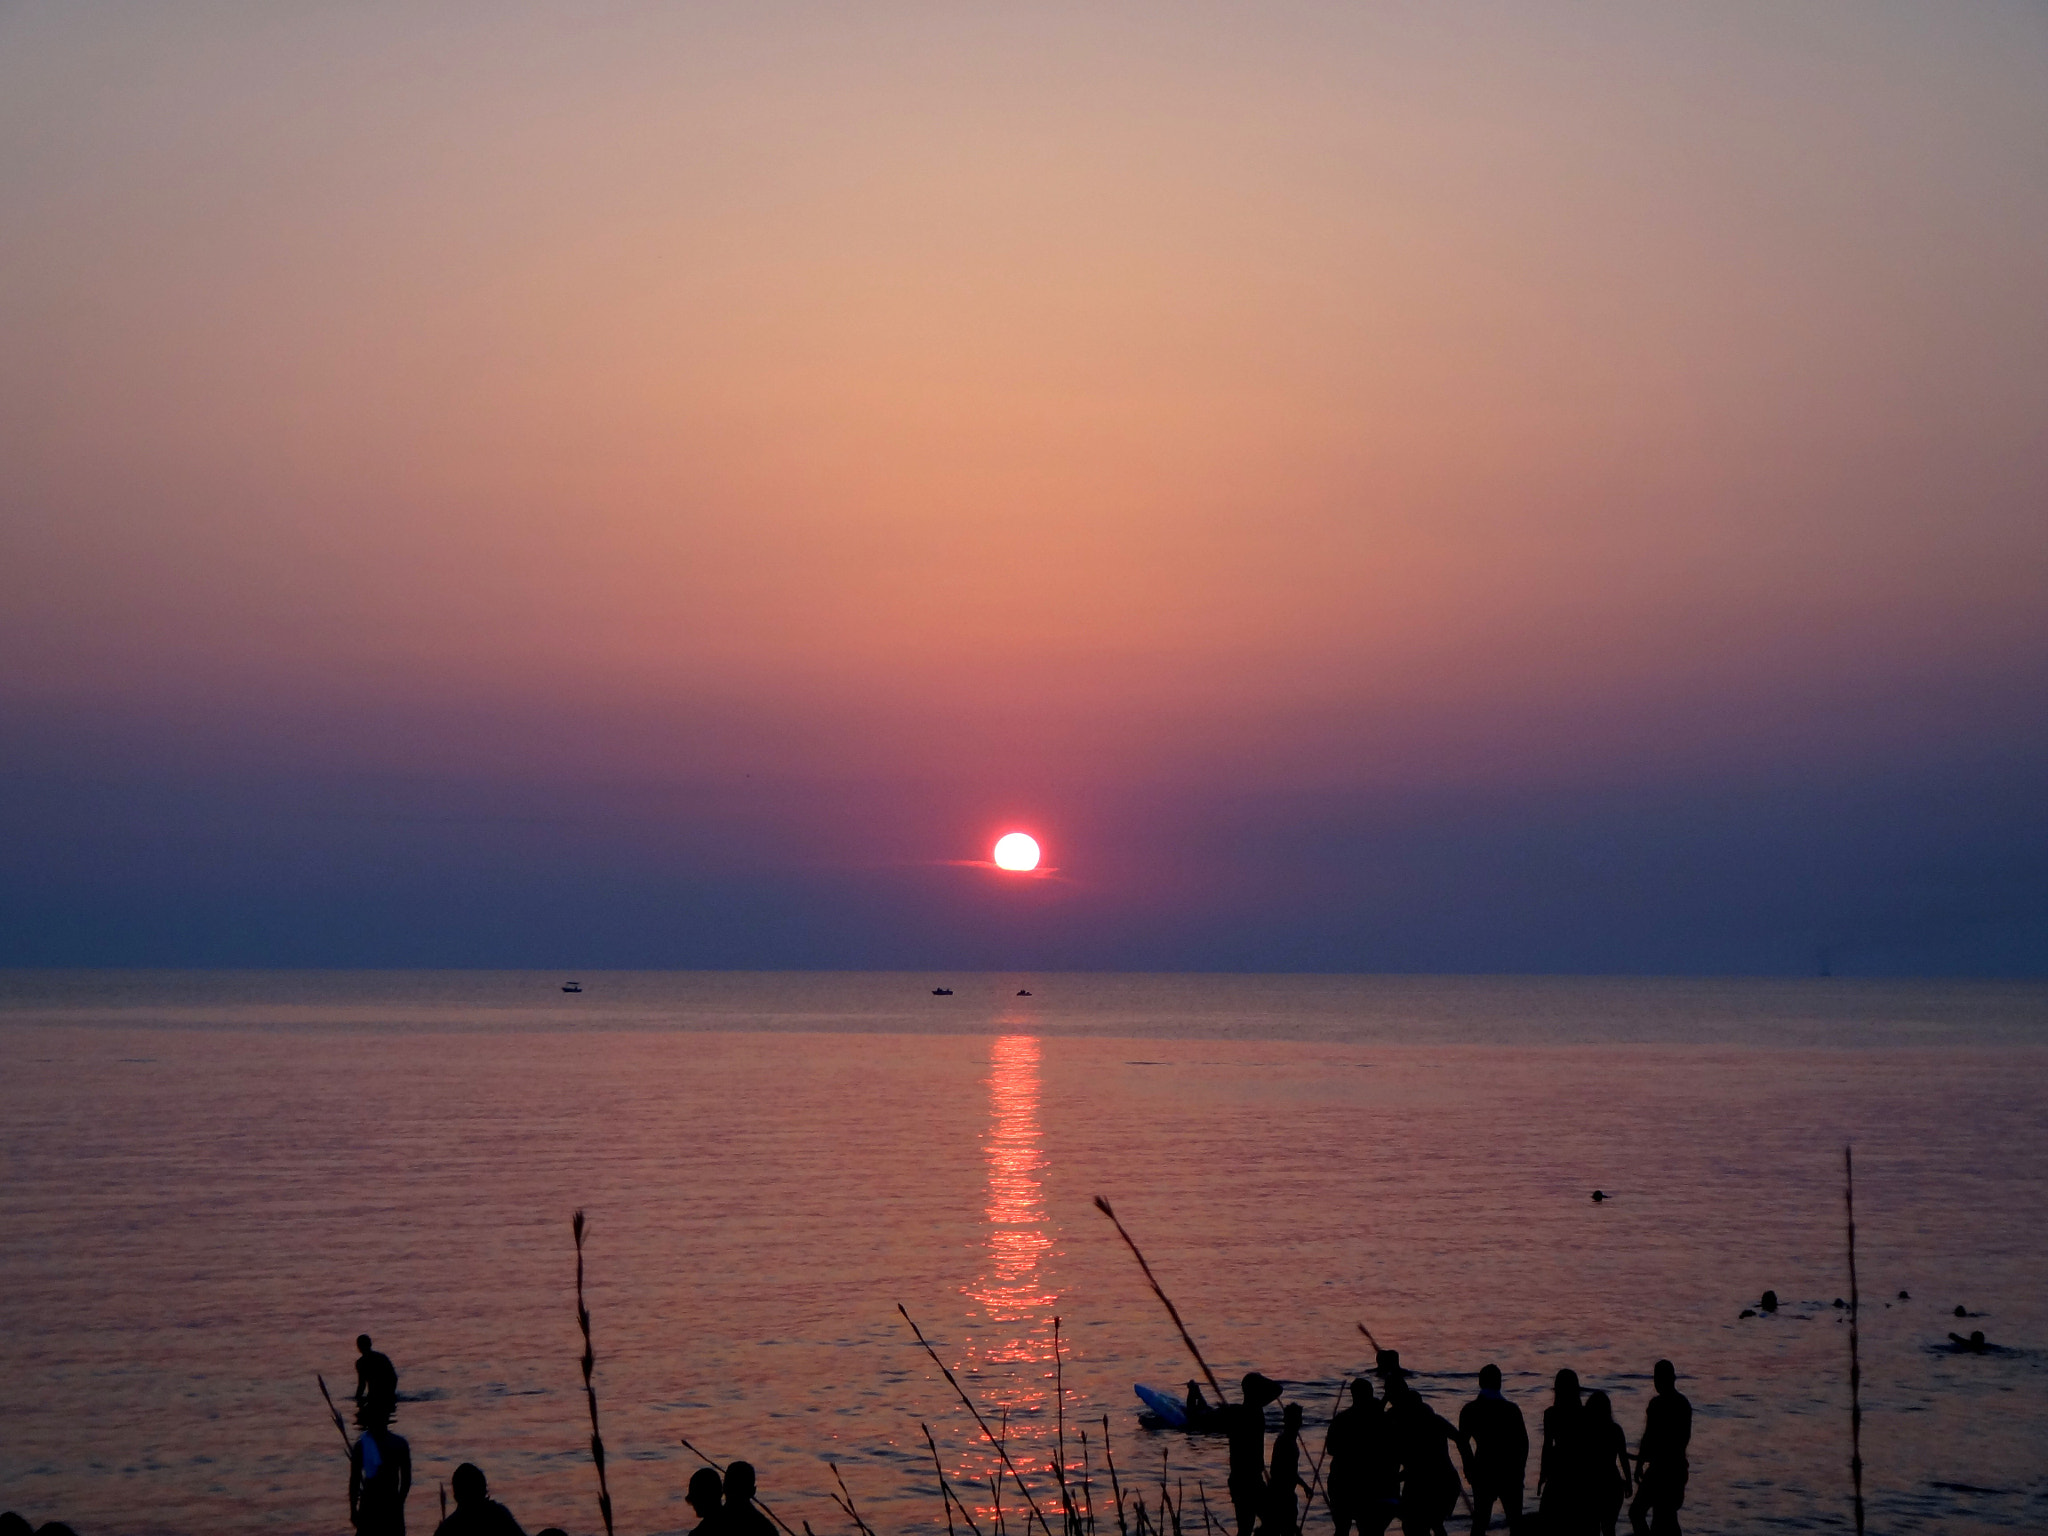 Photograph Watching the sunset by Elena K. on 500px